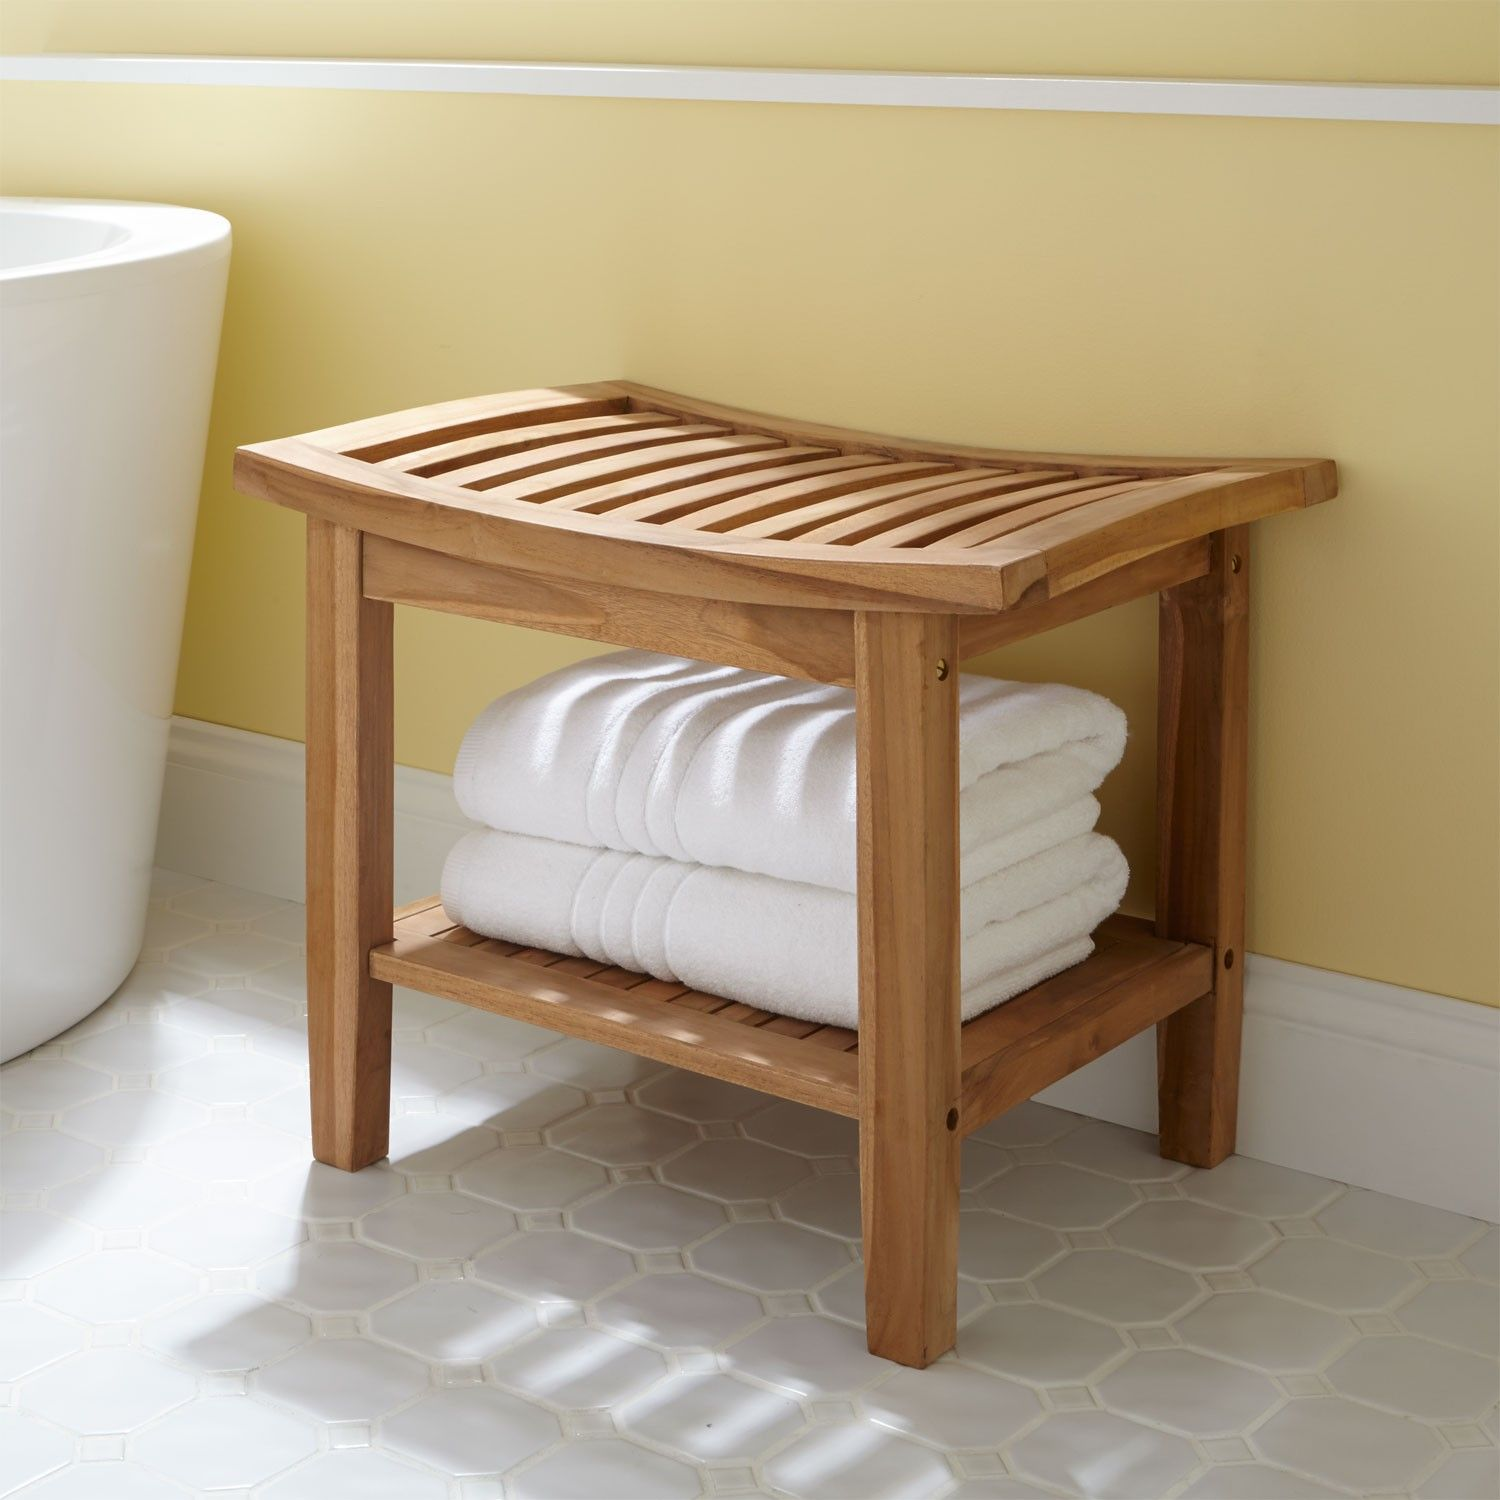 Oak bathroom accessories - Elok Teak Shower Seat